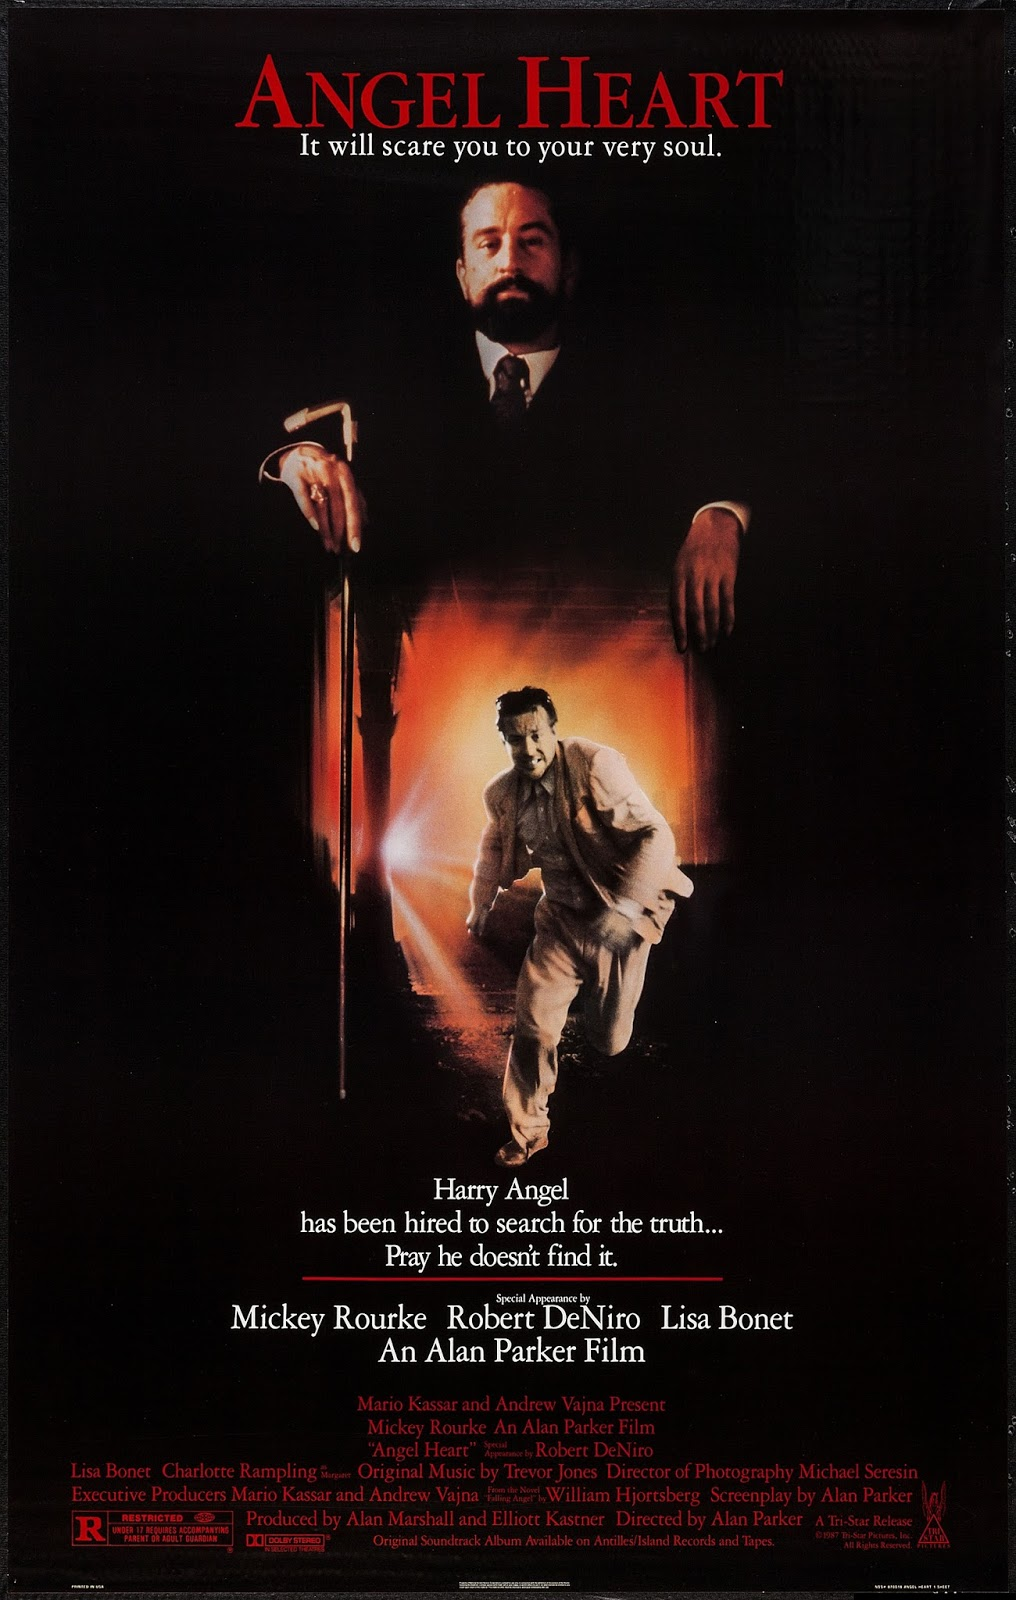 angel heart film noir of the week and throughout the sequence a cacophony of sound contributes to a dante esque illusion of damned souls in hell from the essay the devil you know